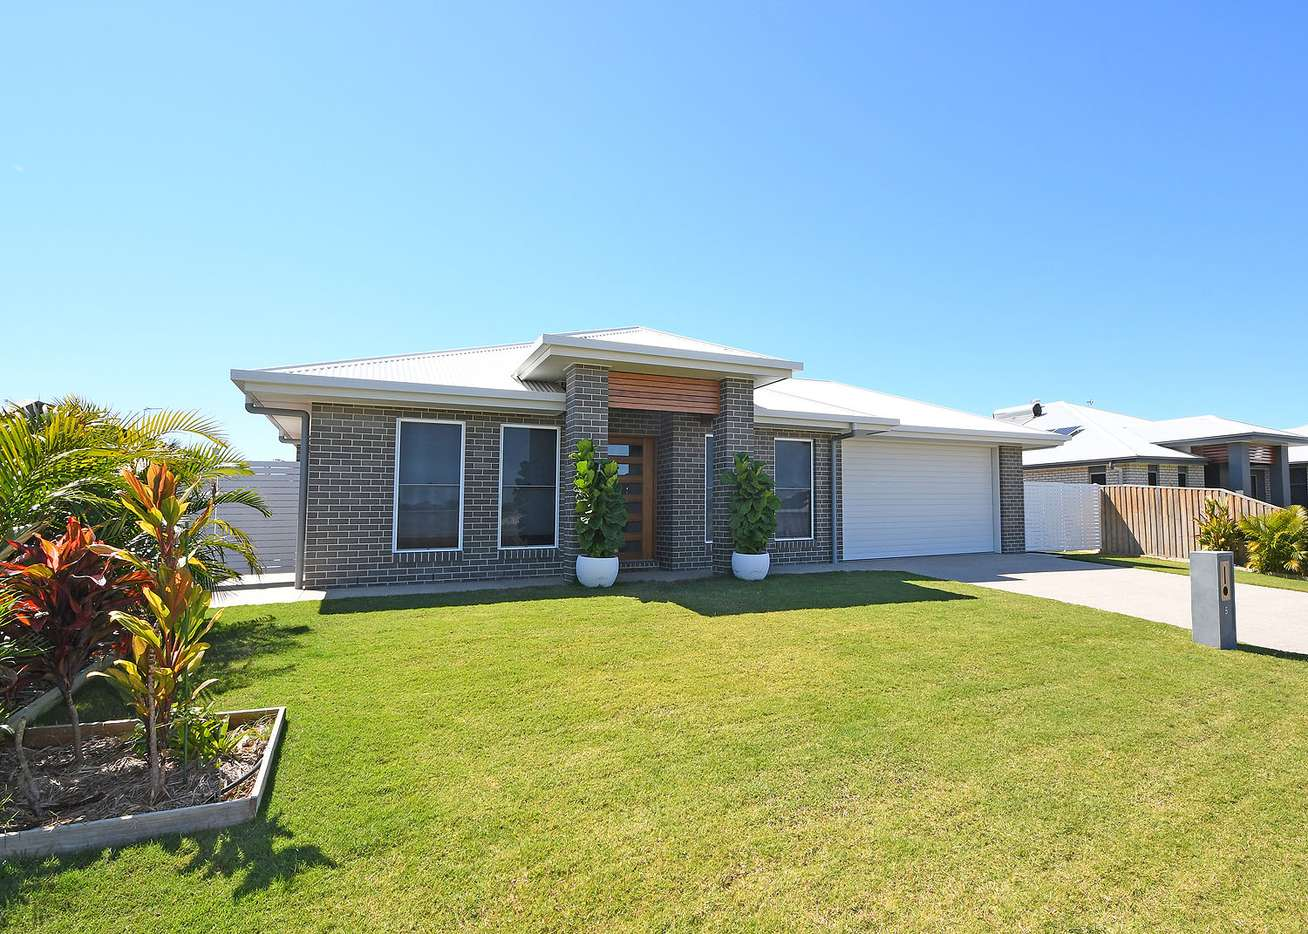 Main view of Homely house listing, 5 Leaward Boulevard, Pialba, QLD 4655